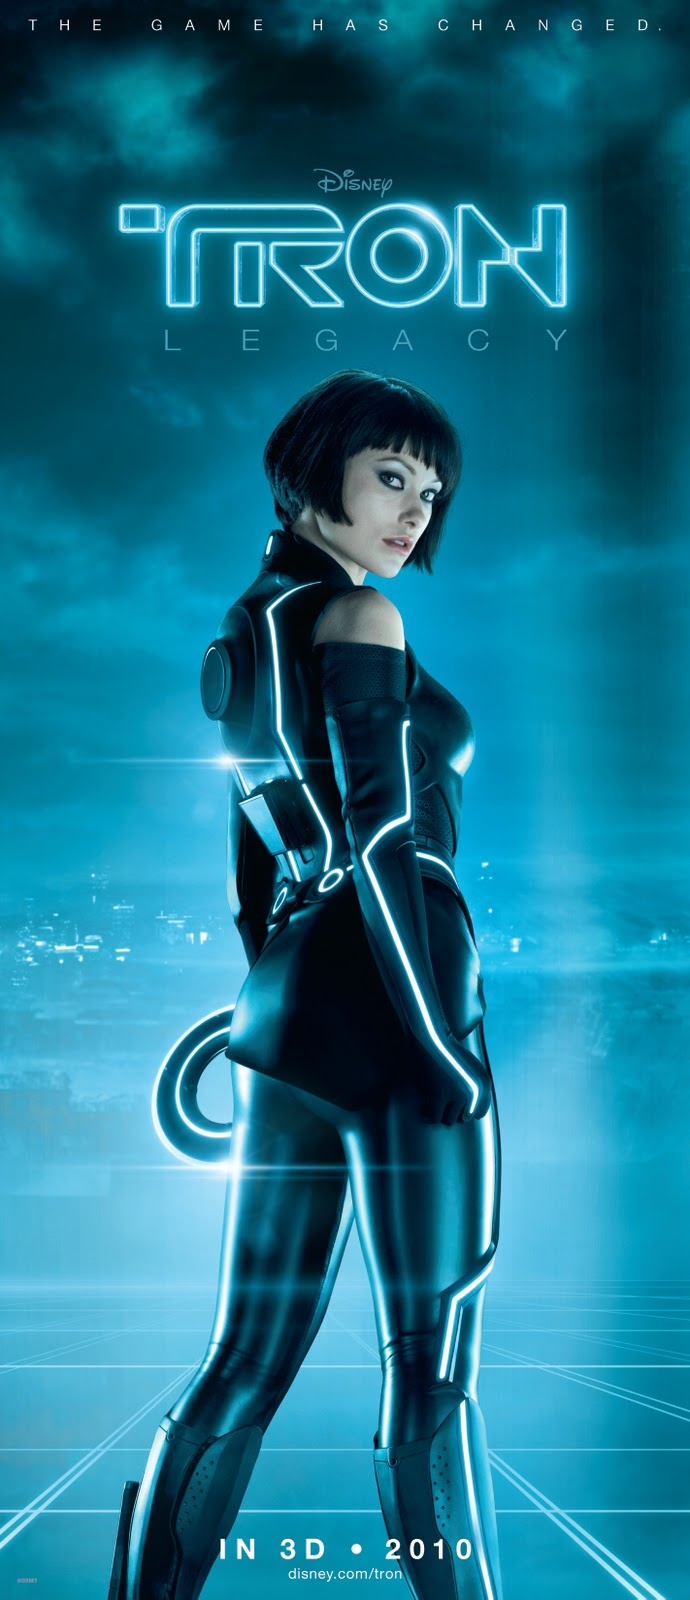 7 best tron look images on pinterest | tron legacy, disney films and